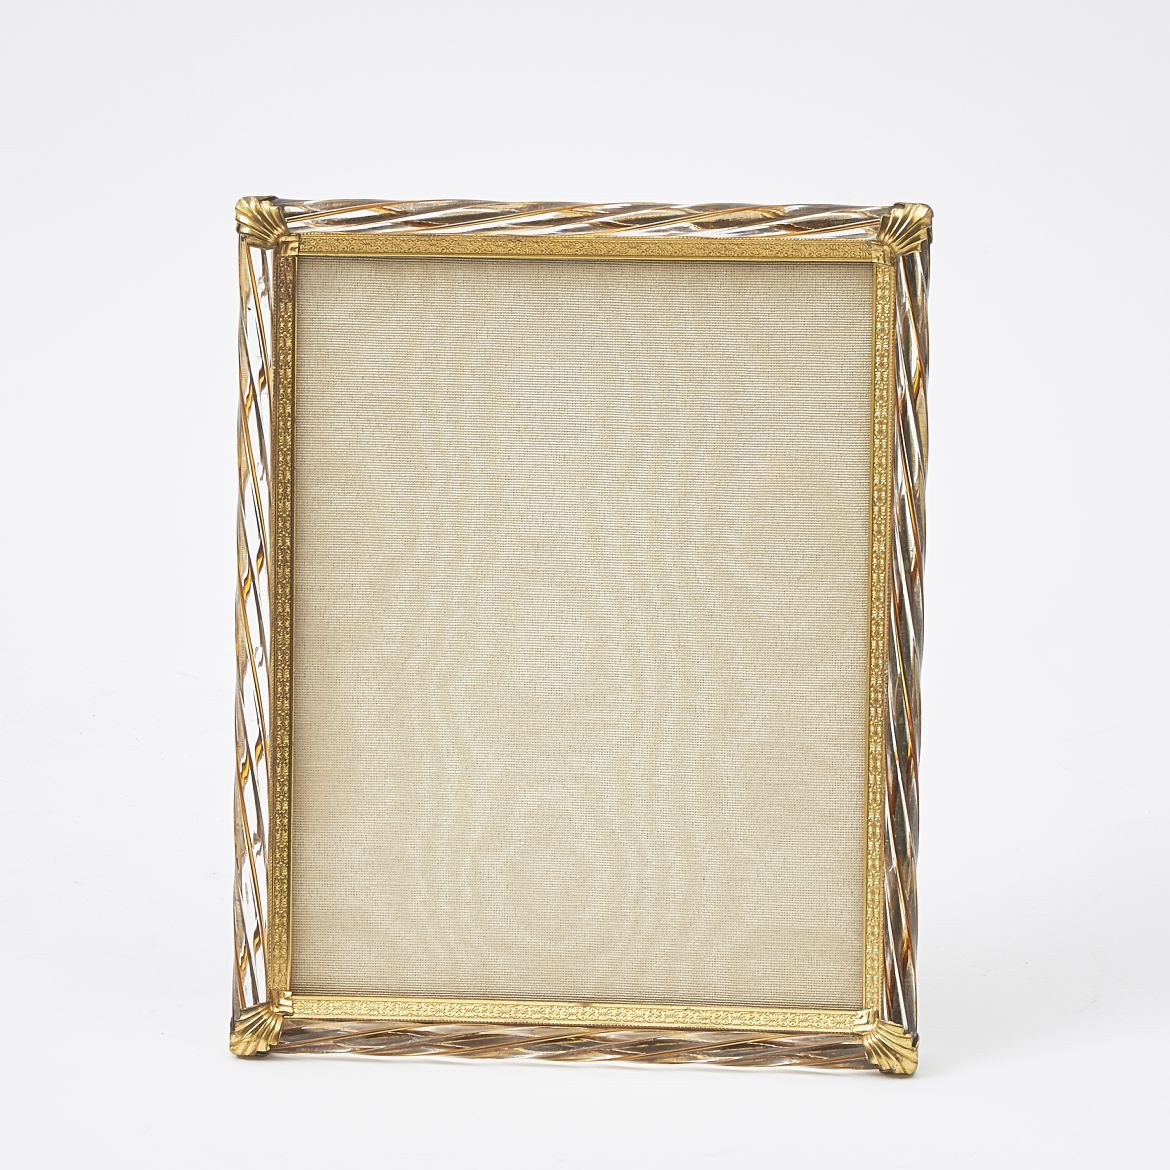 Guinevere Antiques | Gilt & Striped Twisted Lucite Frame